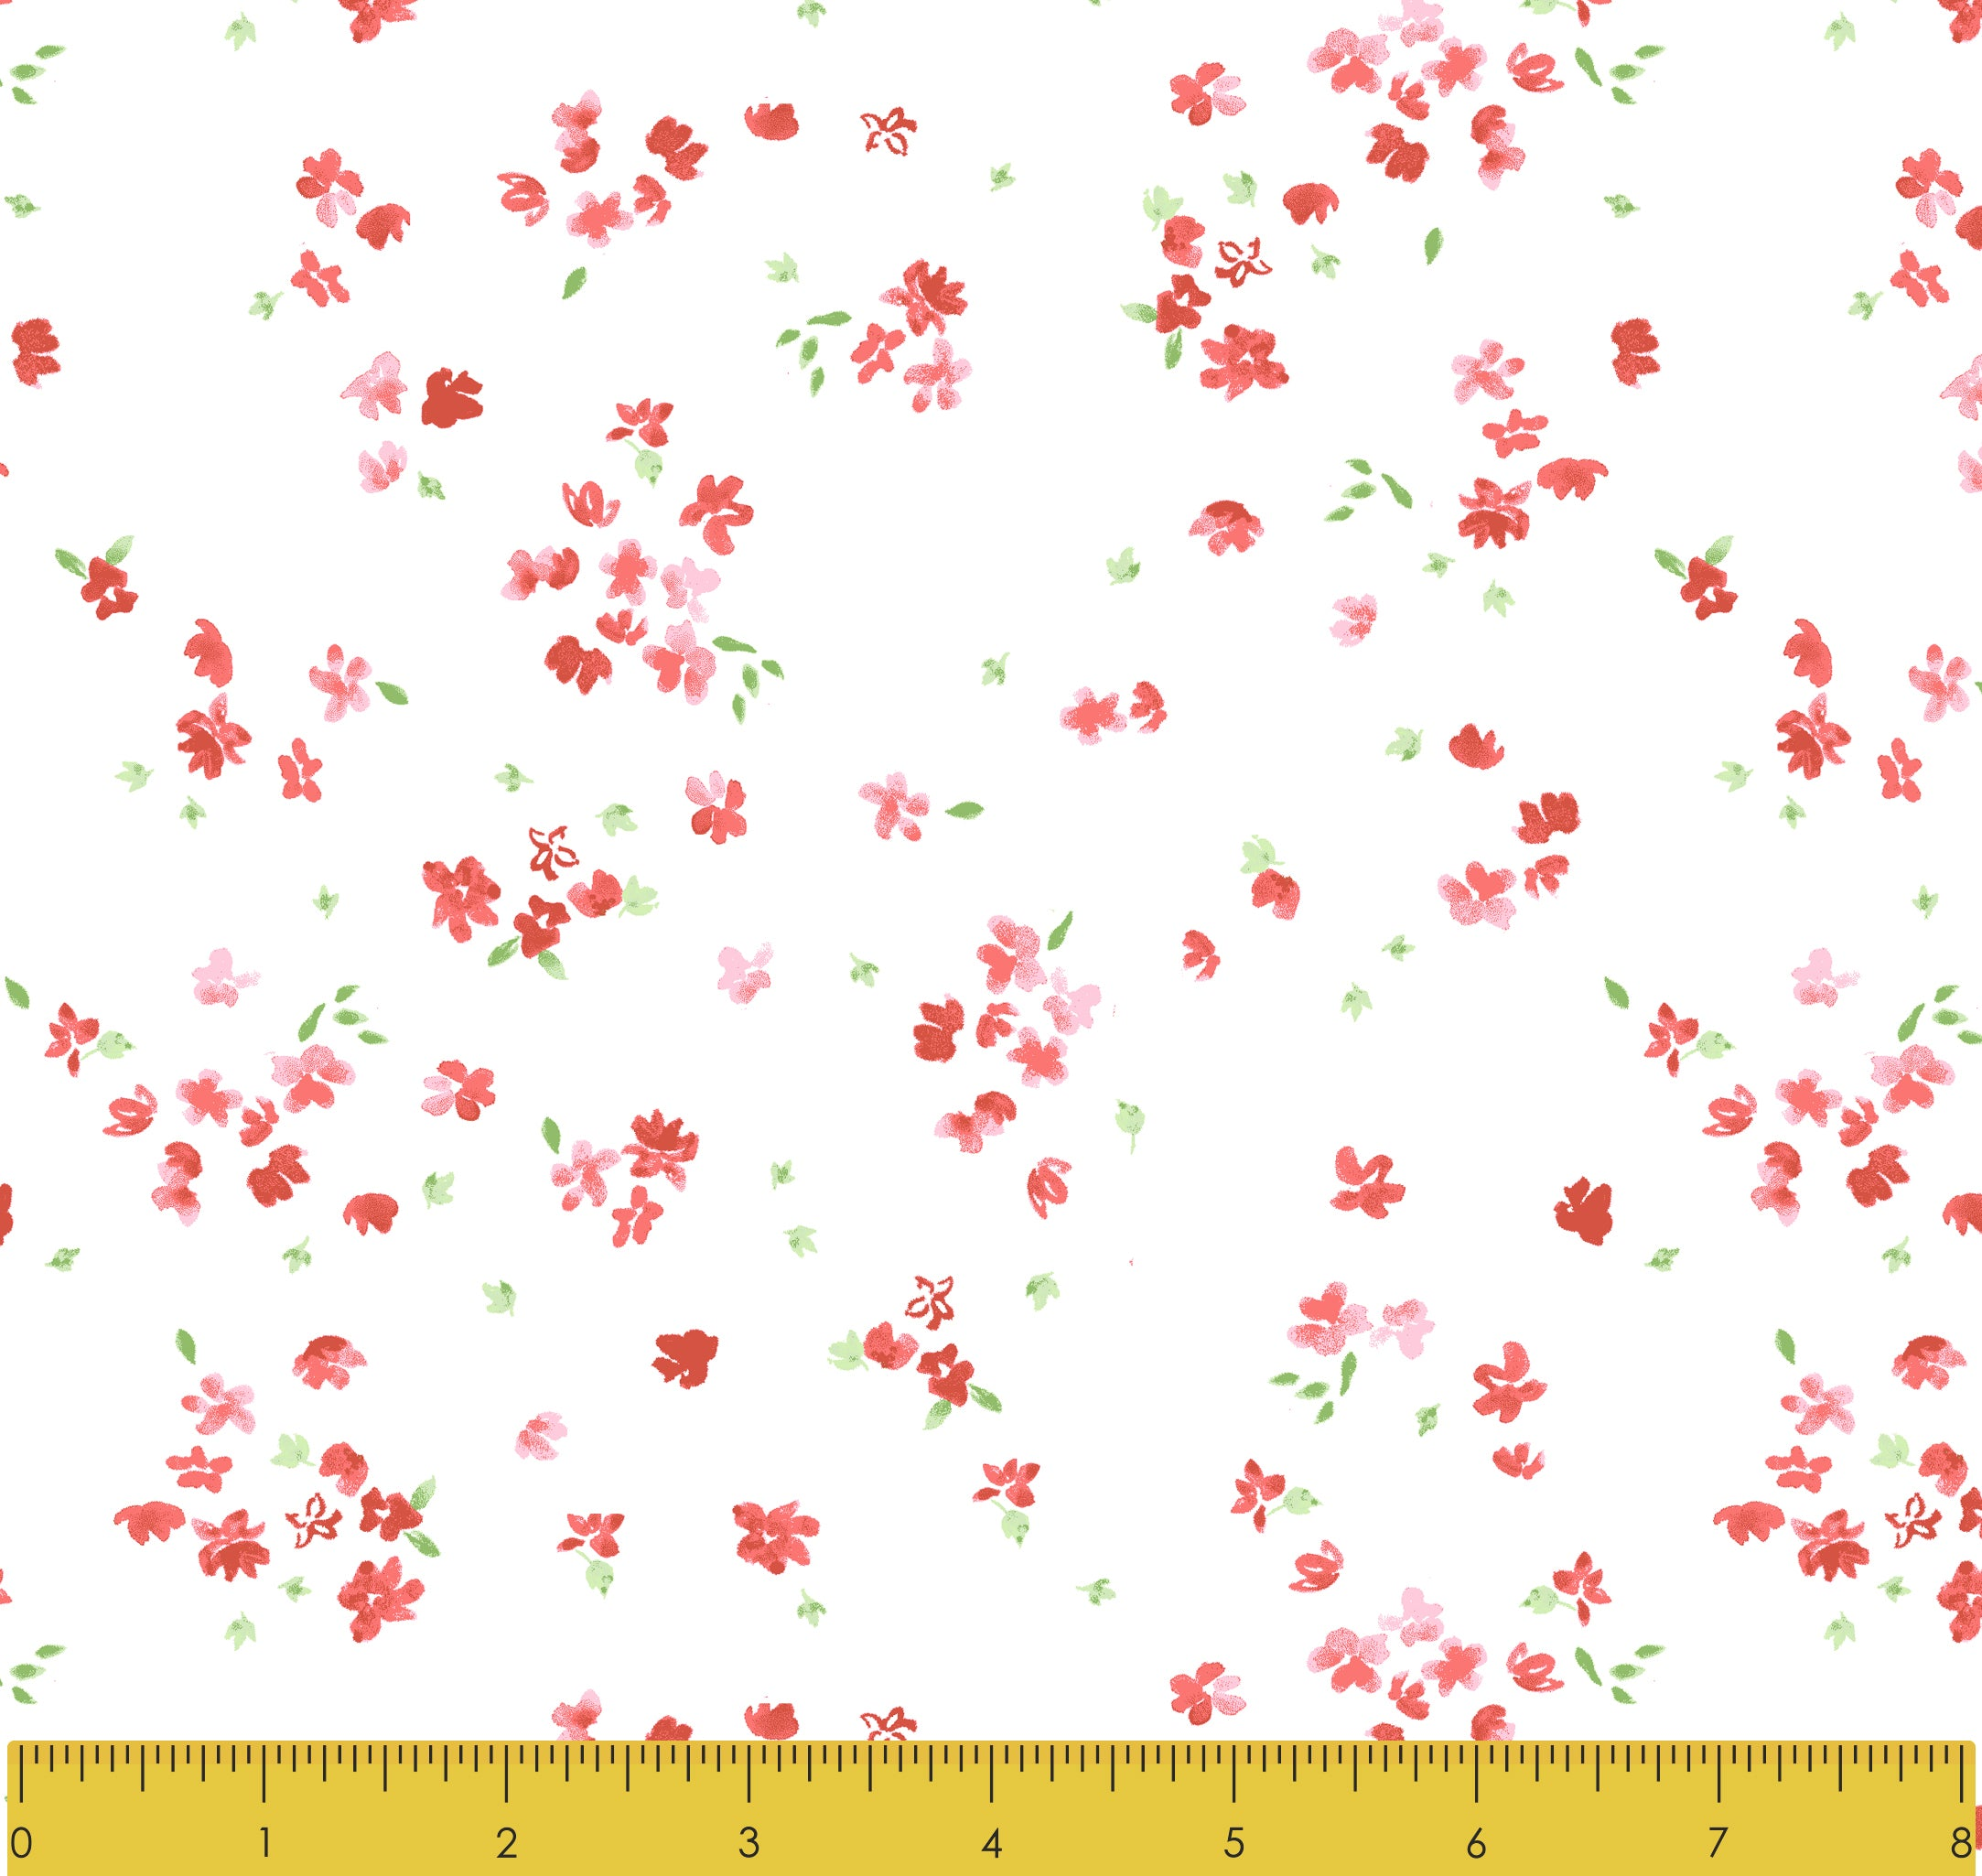 Stitch & Sparkle Fabrics, Watercolor Floral, Small Watercolor Flowers  Cotton Fabrics,  Quilt, Crafts, Sewing, Cut By The Yard